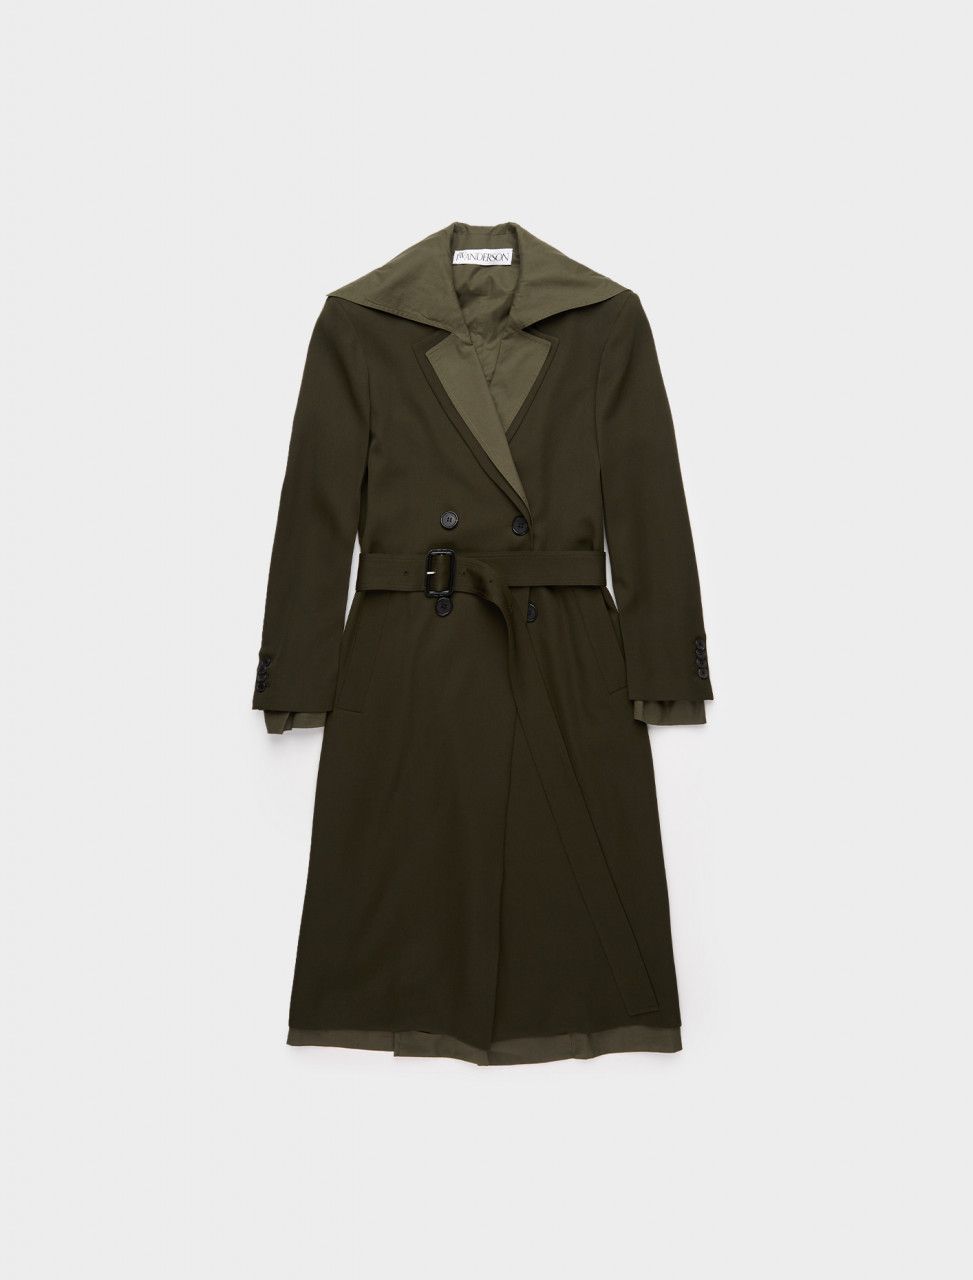 179-CO0059-PG0011-575 JW ANDERSON DOUBLE LAYERED BOLTED COAT